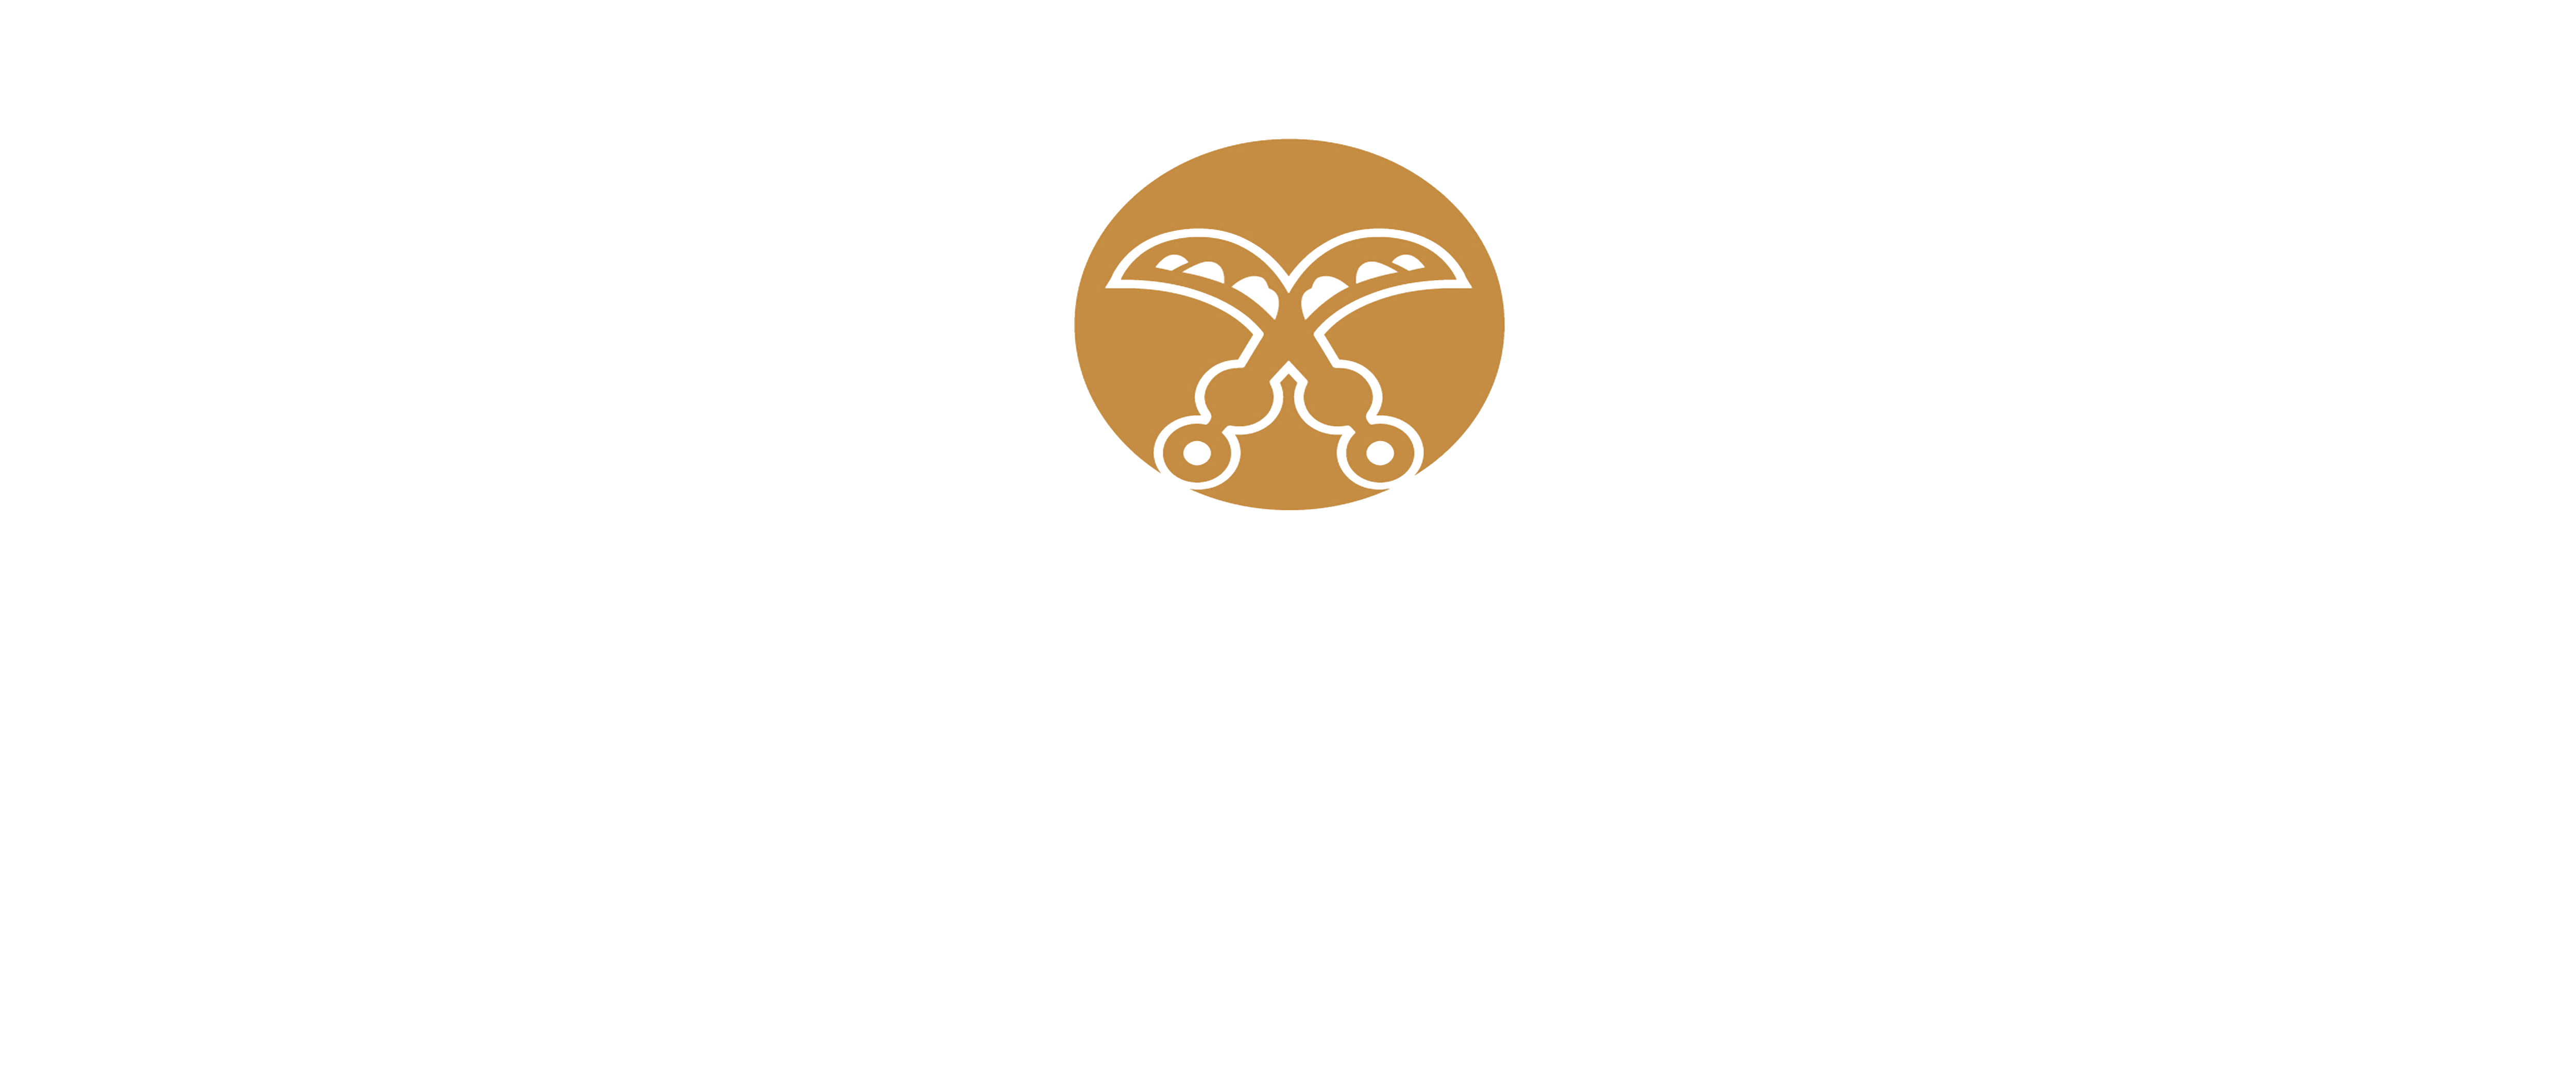 Ridge Royal Hotel